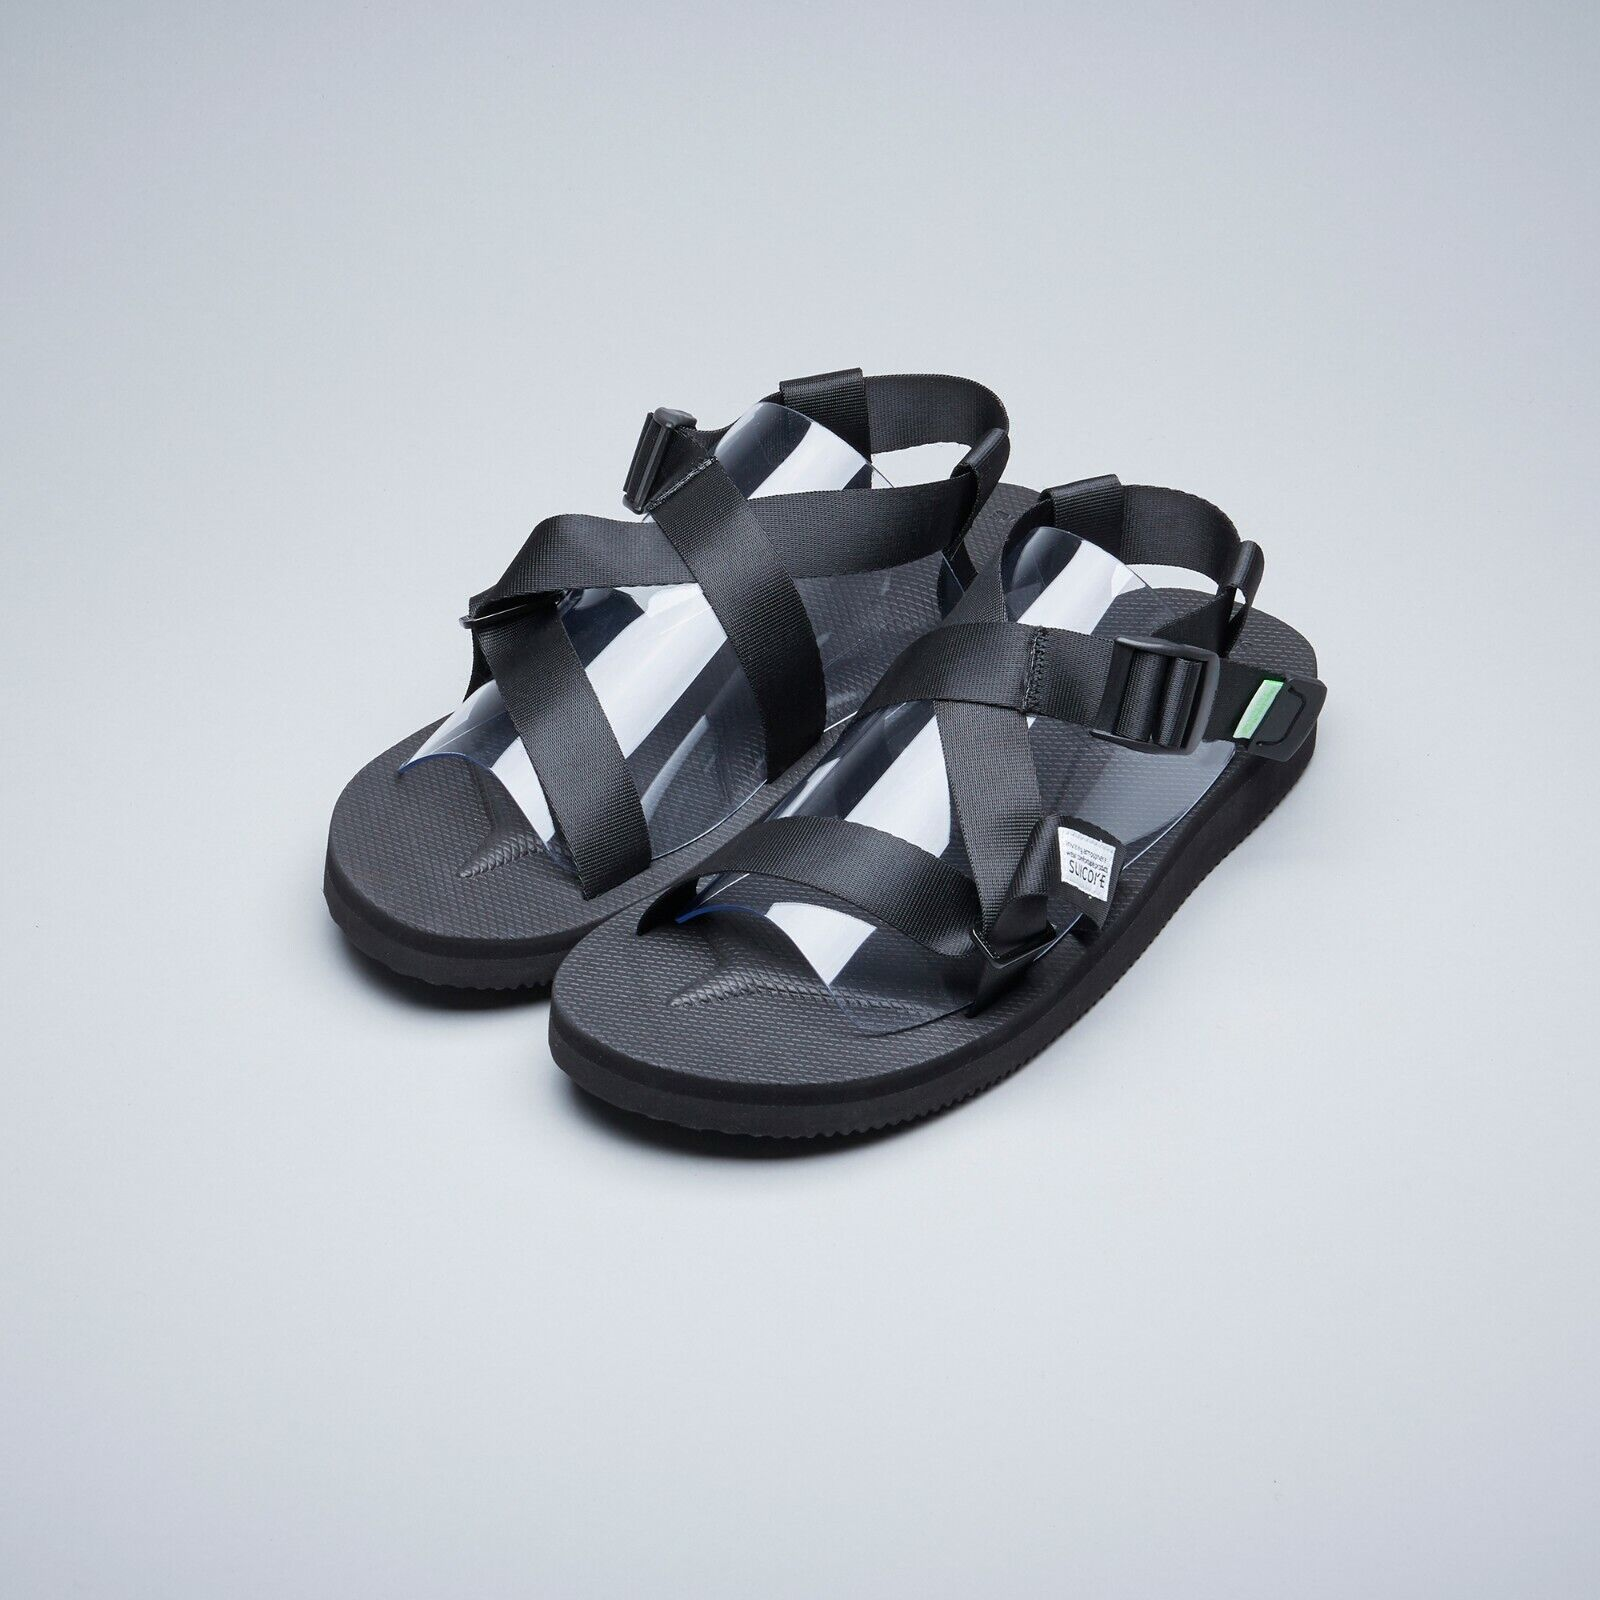 Suicoke SS19 OG-023-2Cab CHIN2-Cab White Nylon Tapes Antibacterial Sandals